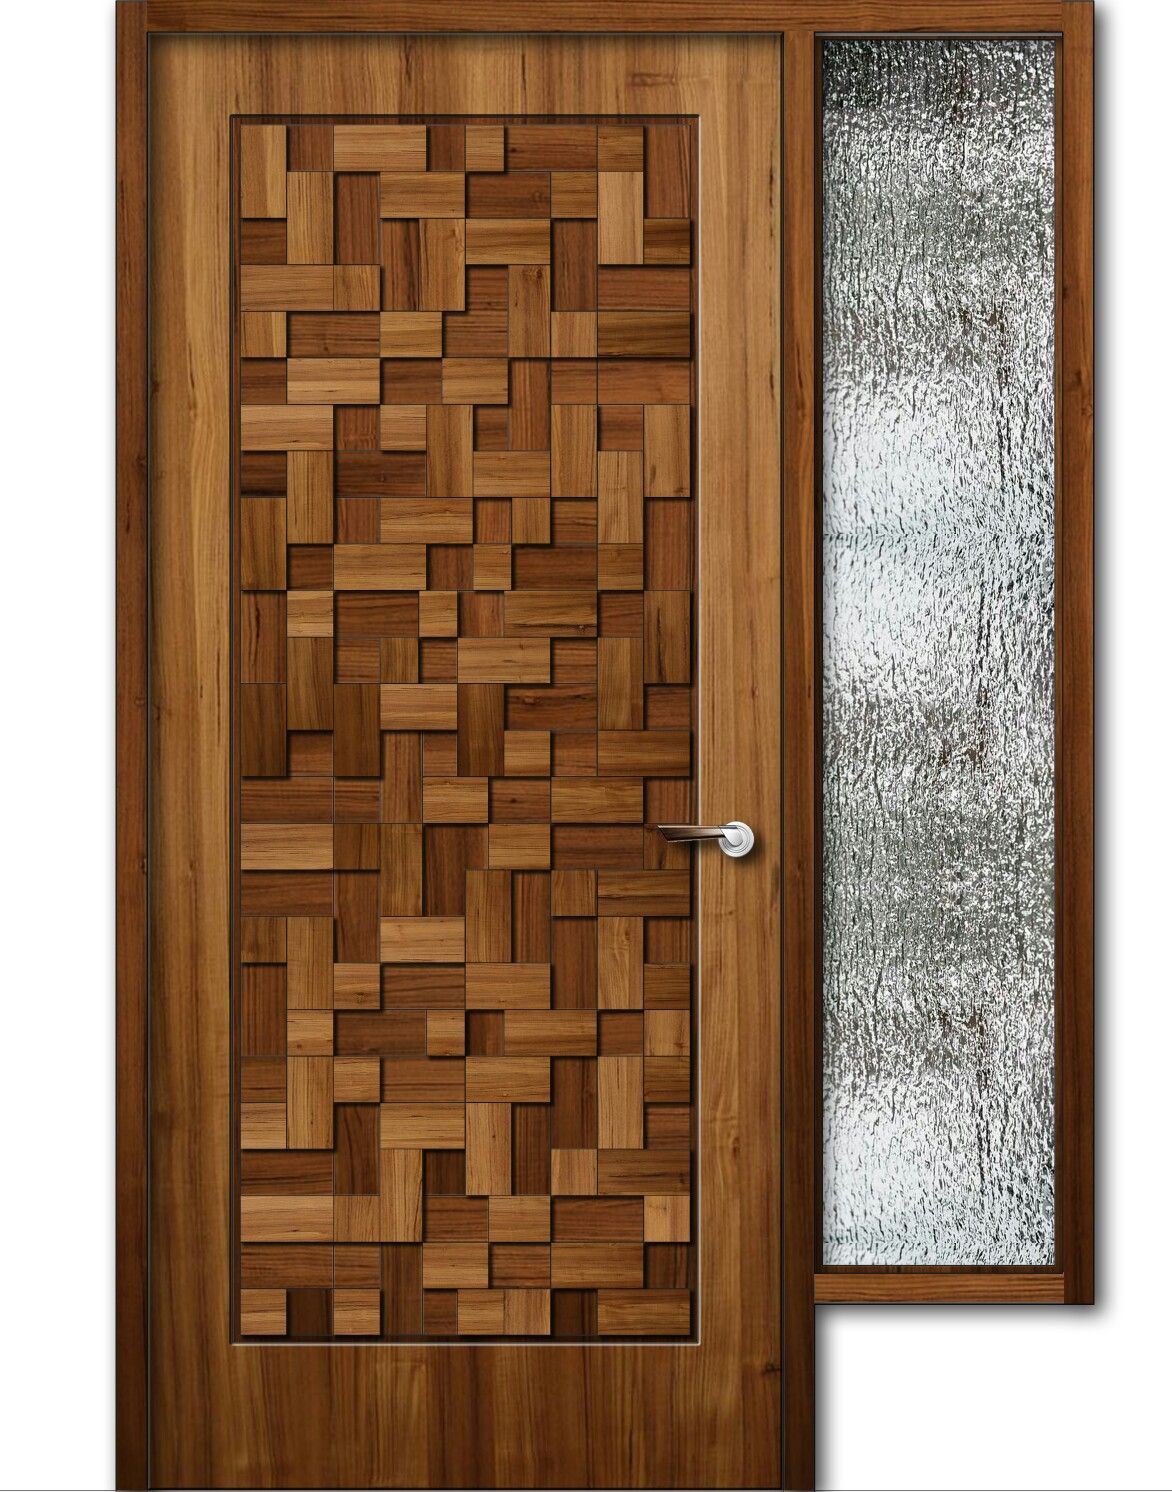 Teak wood finish wooden door with window 8feet height for Wood door design latest